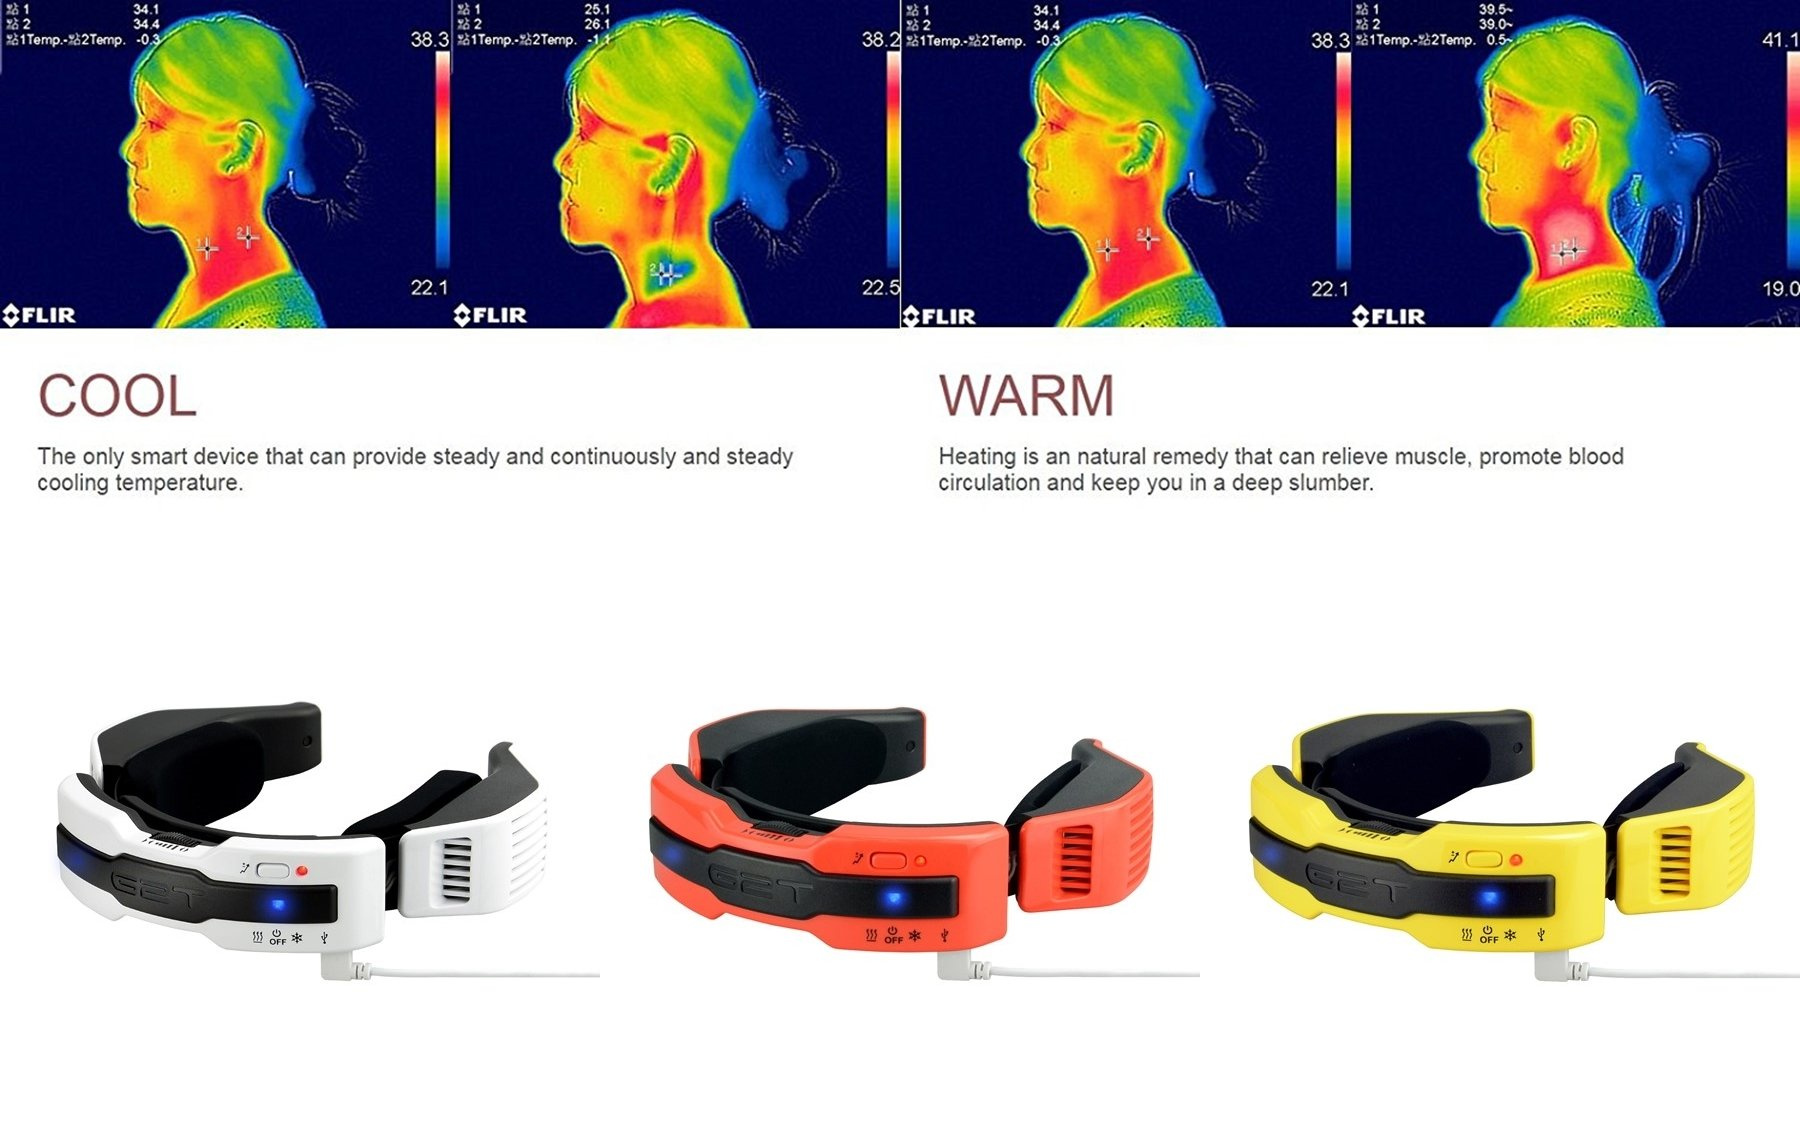 G2T N1 Plus Hot & Cold 2 in 1 Electric Neck Warming Scarf [Limited Edition], Adjustable Ergonomic Cooling and Heating Device for Outdoors Office Home Car (L/XL) (Power Bank Not Included)